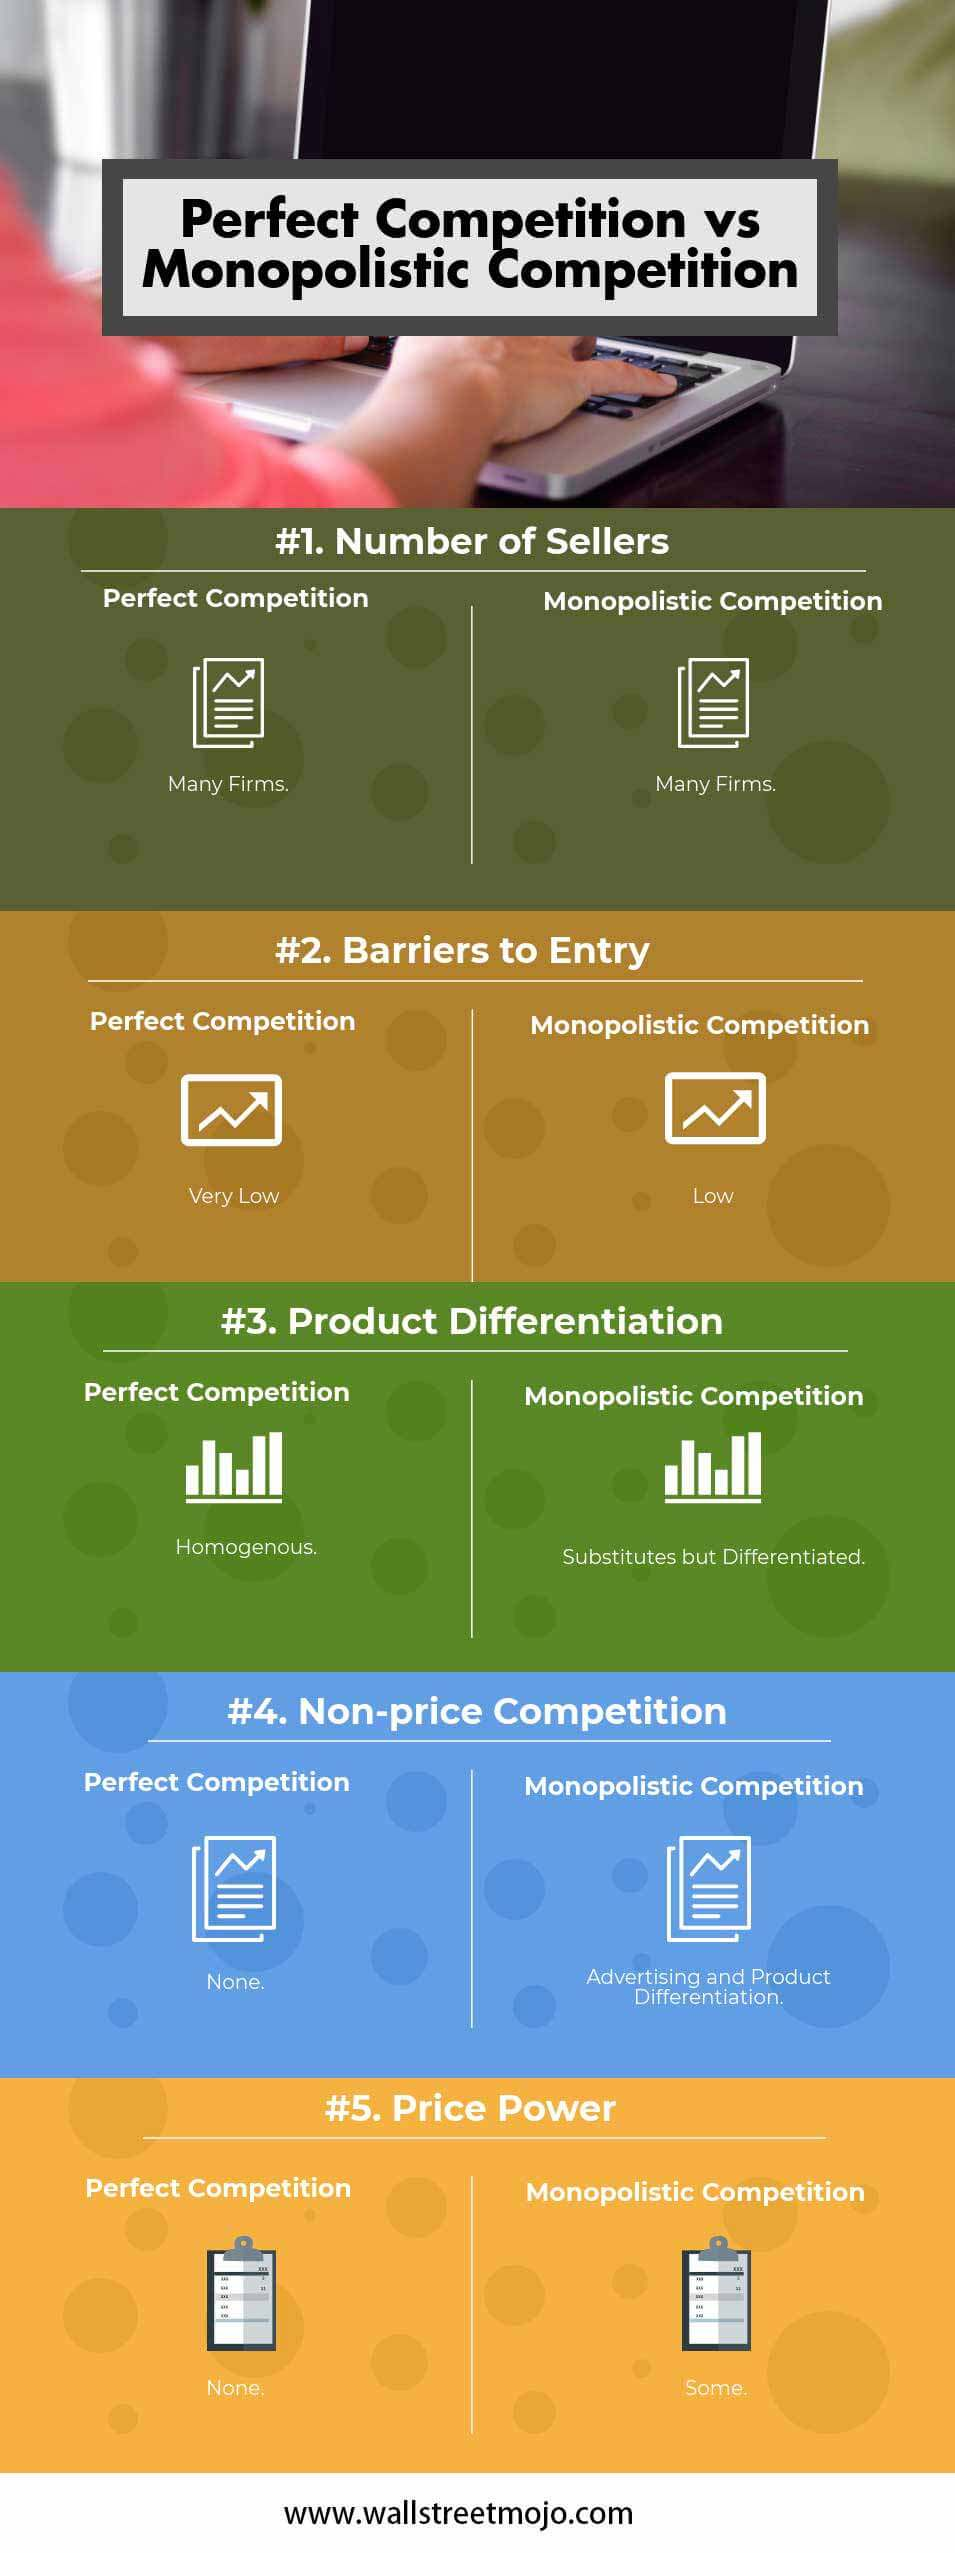 Perfect-Competition-vs-Monopolistic-Competition